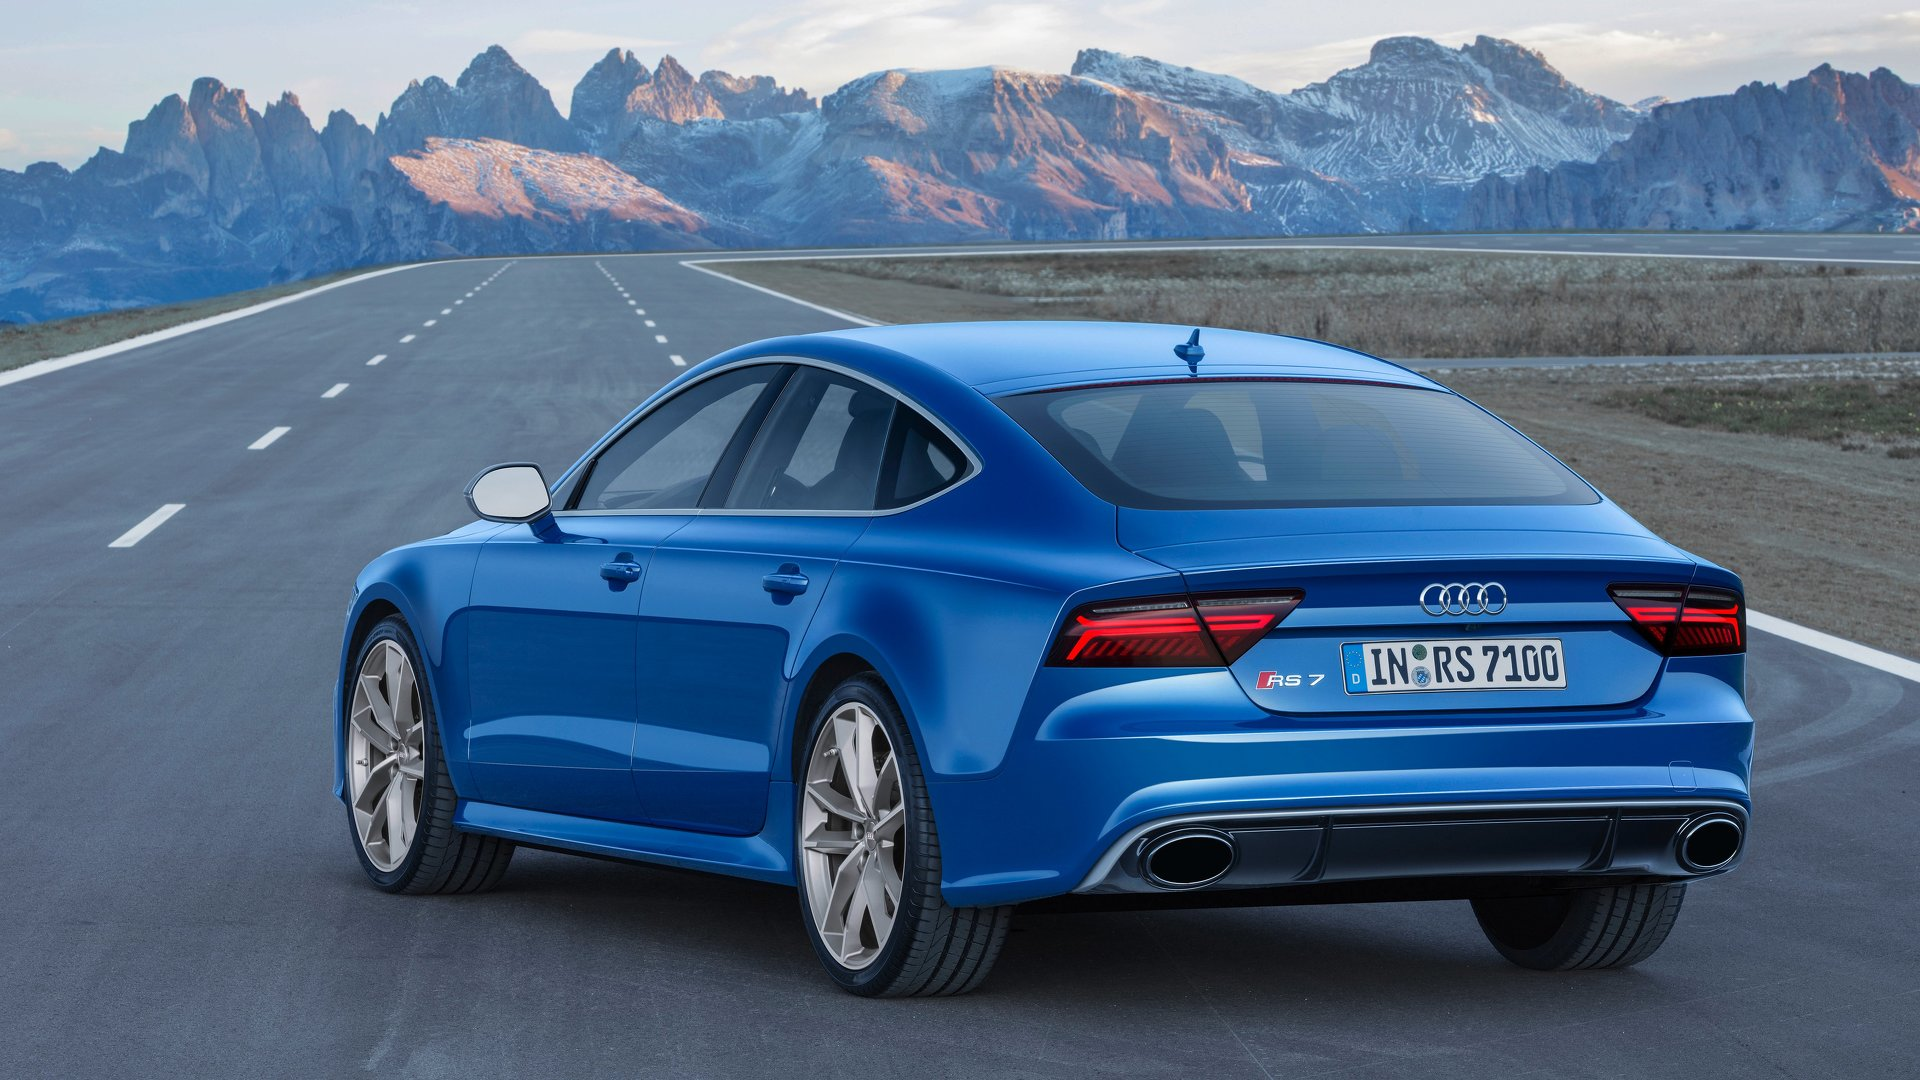 cars features review a by audi abt carbon rs photos also rear fiber the and specs spoiler